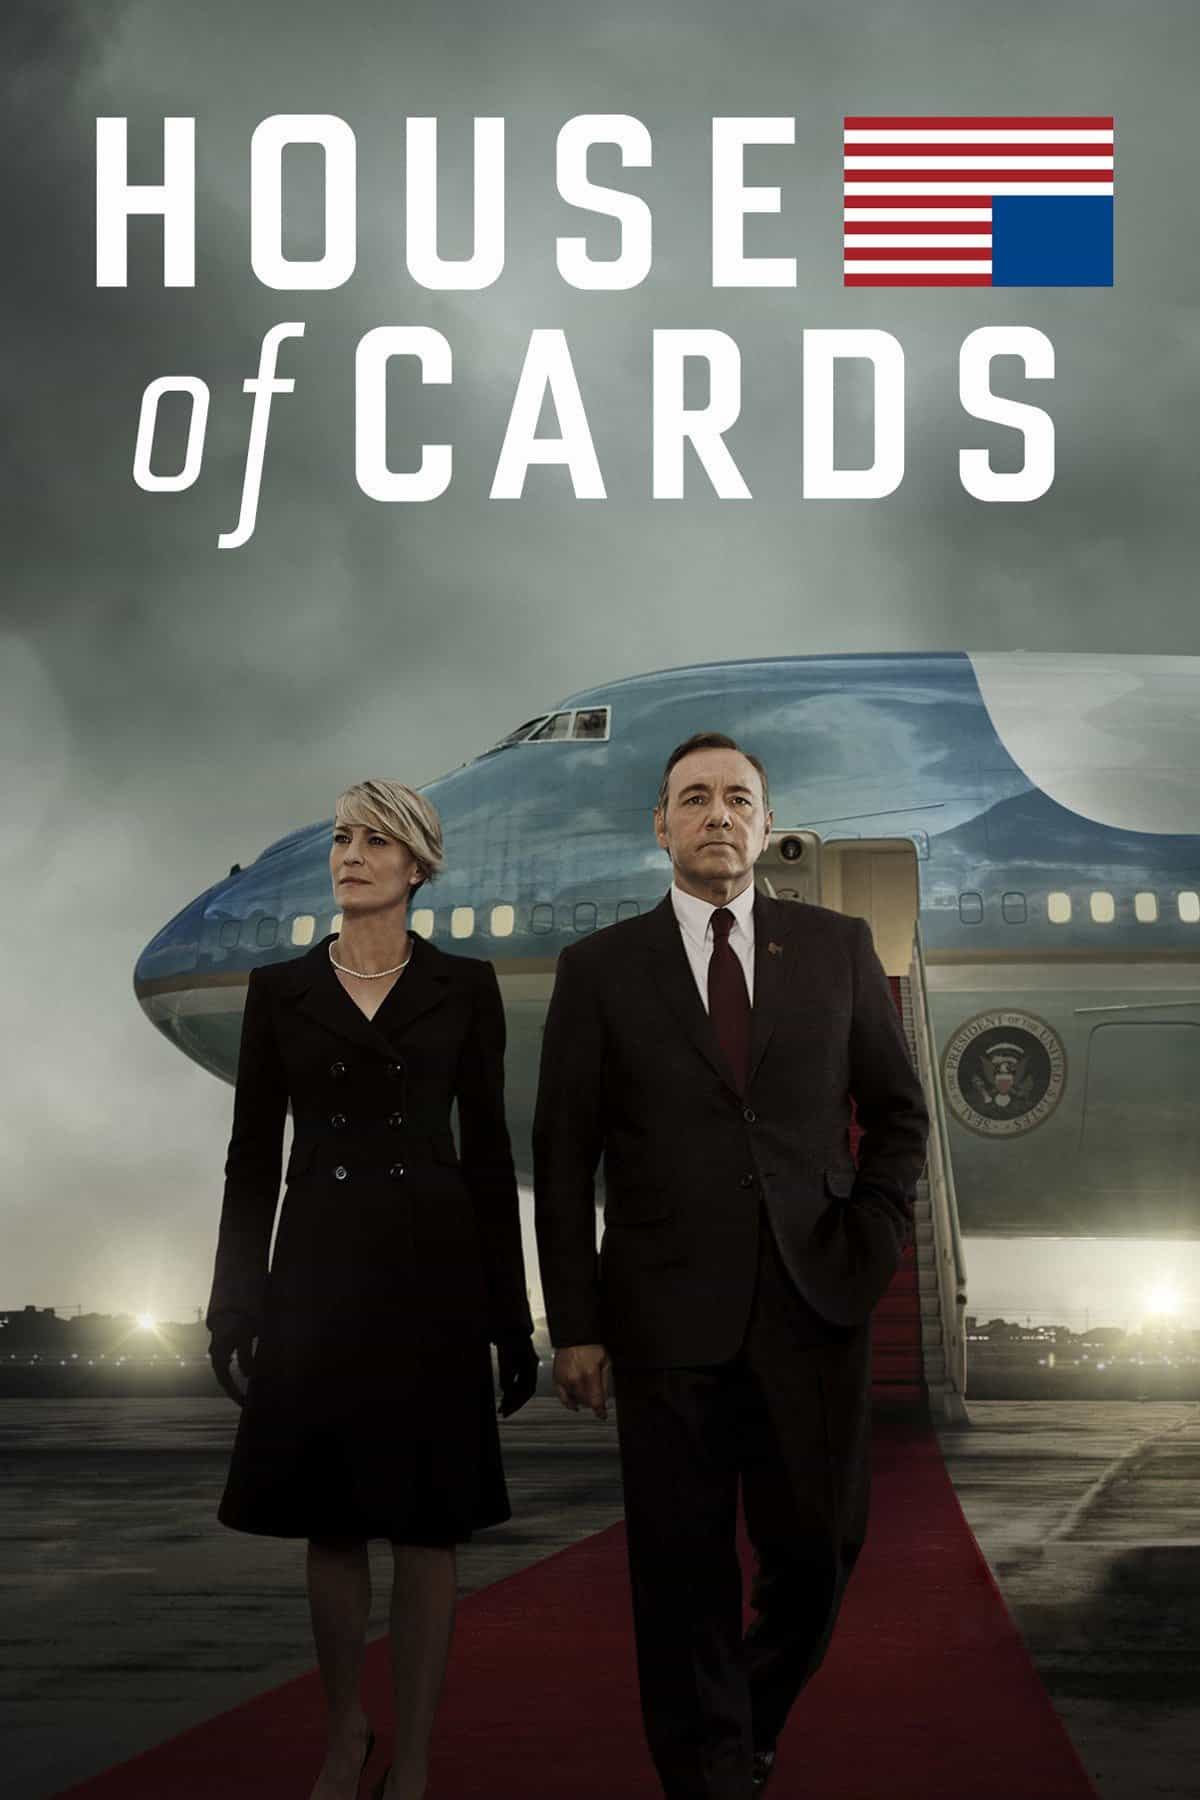 House of Cards, 2013